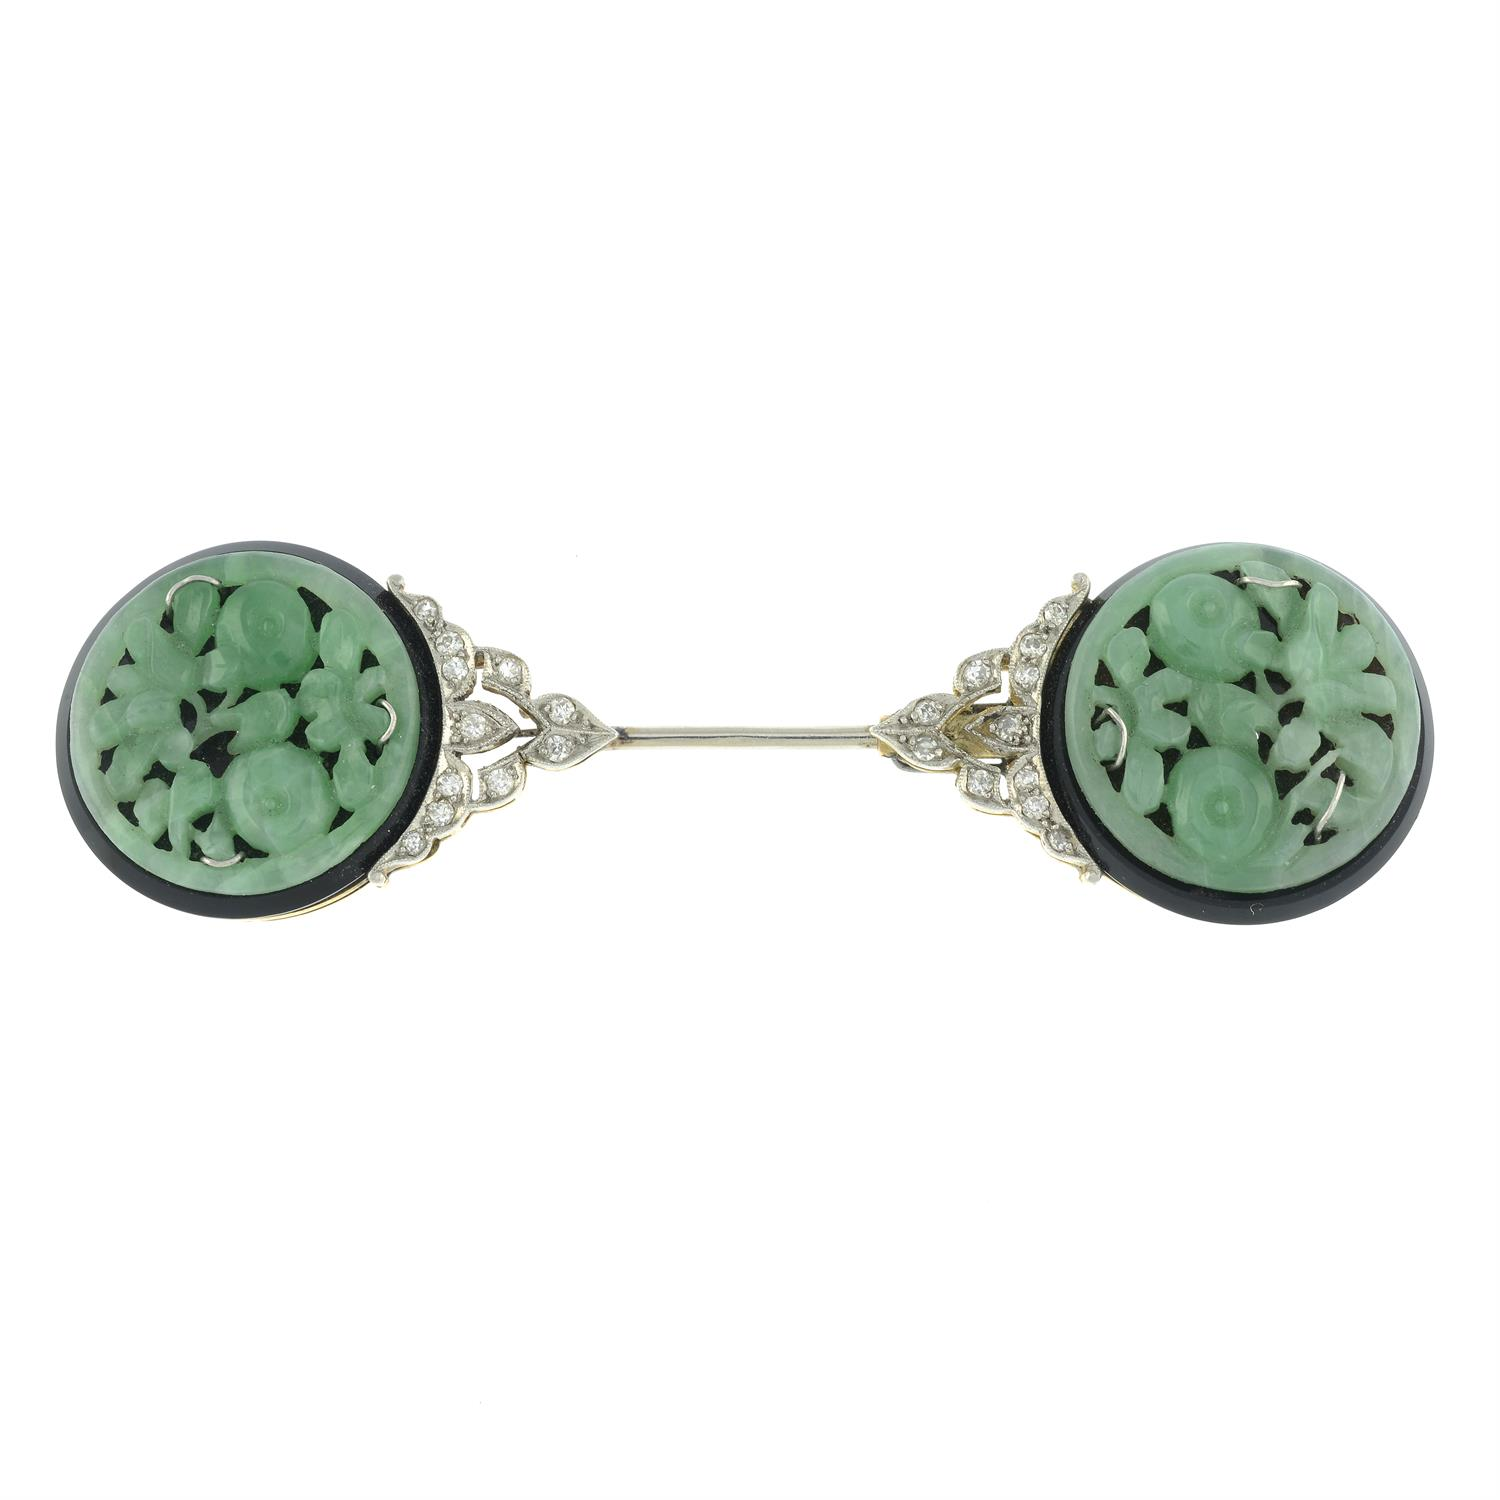 An Art Deco platinum and 15ct gold, carved jade, onyx and single-cut diamond jabot pin. - Image 2 of 4